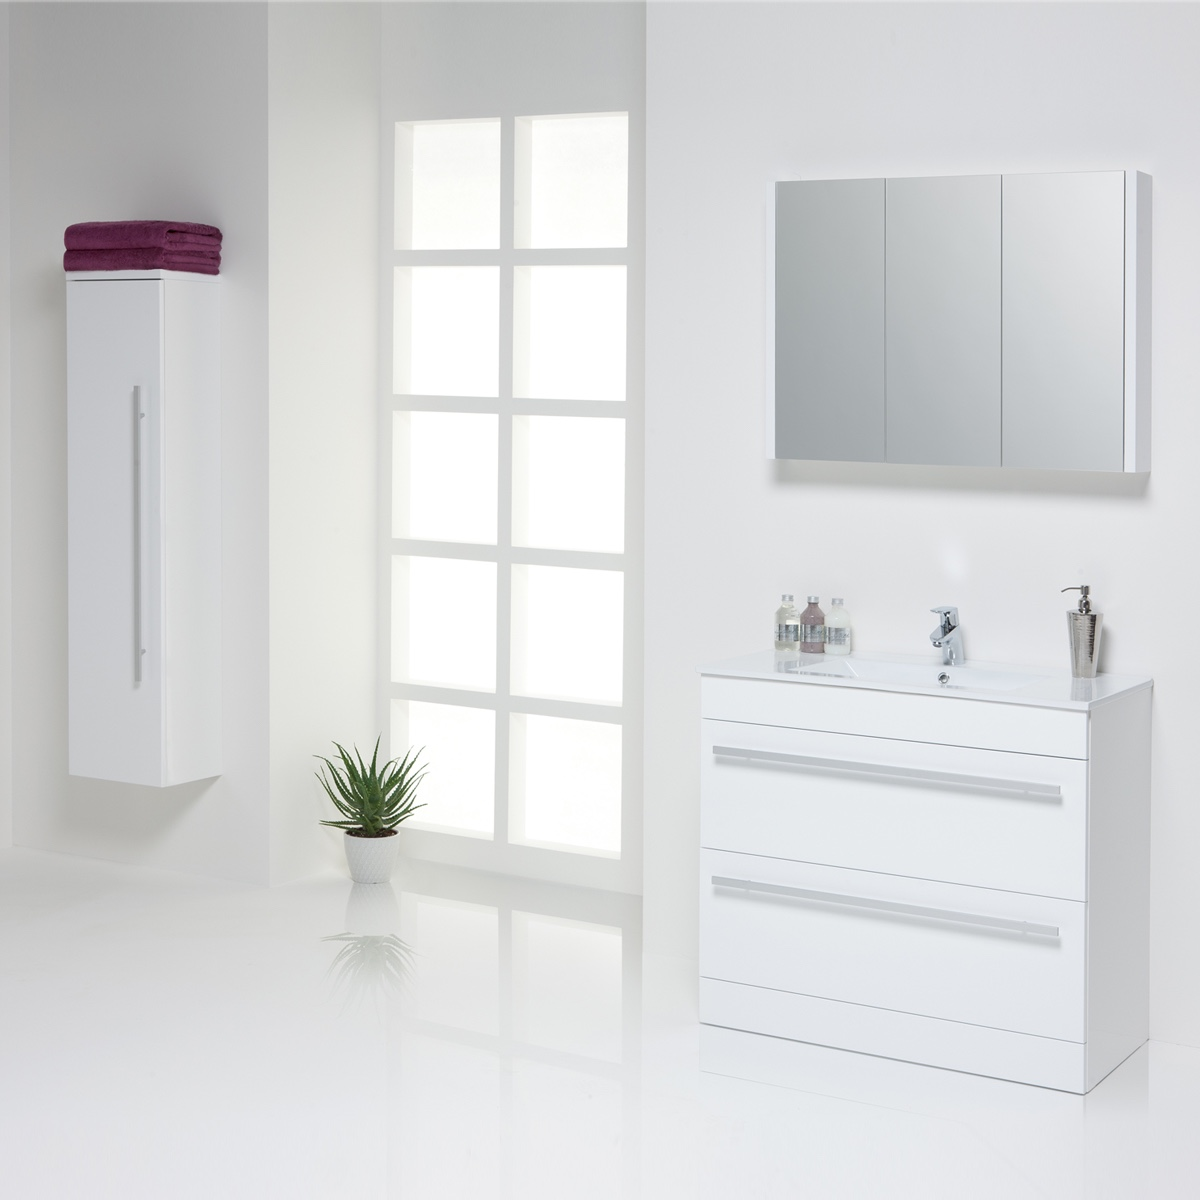 Purity bathroom furniture in white bathroom studio keighley for Furniture keighley